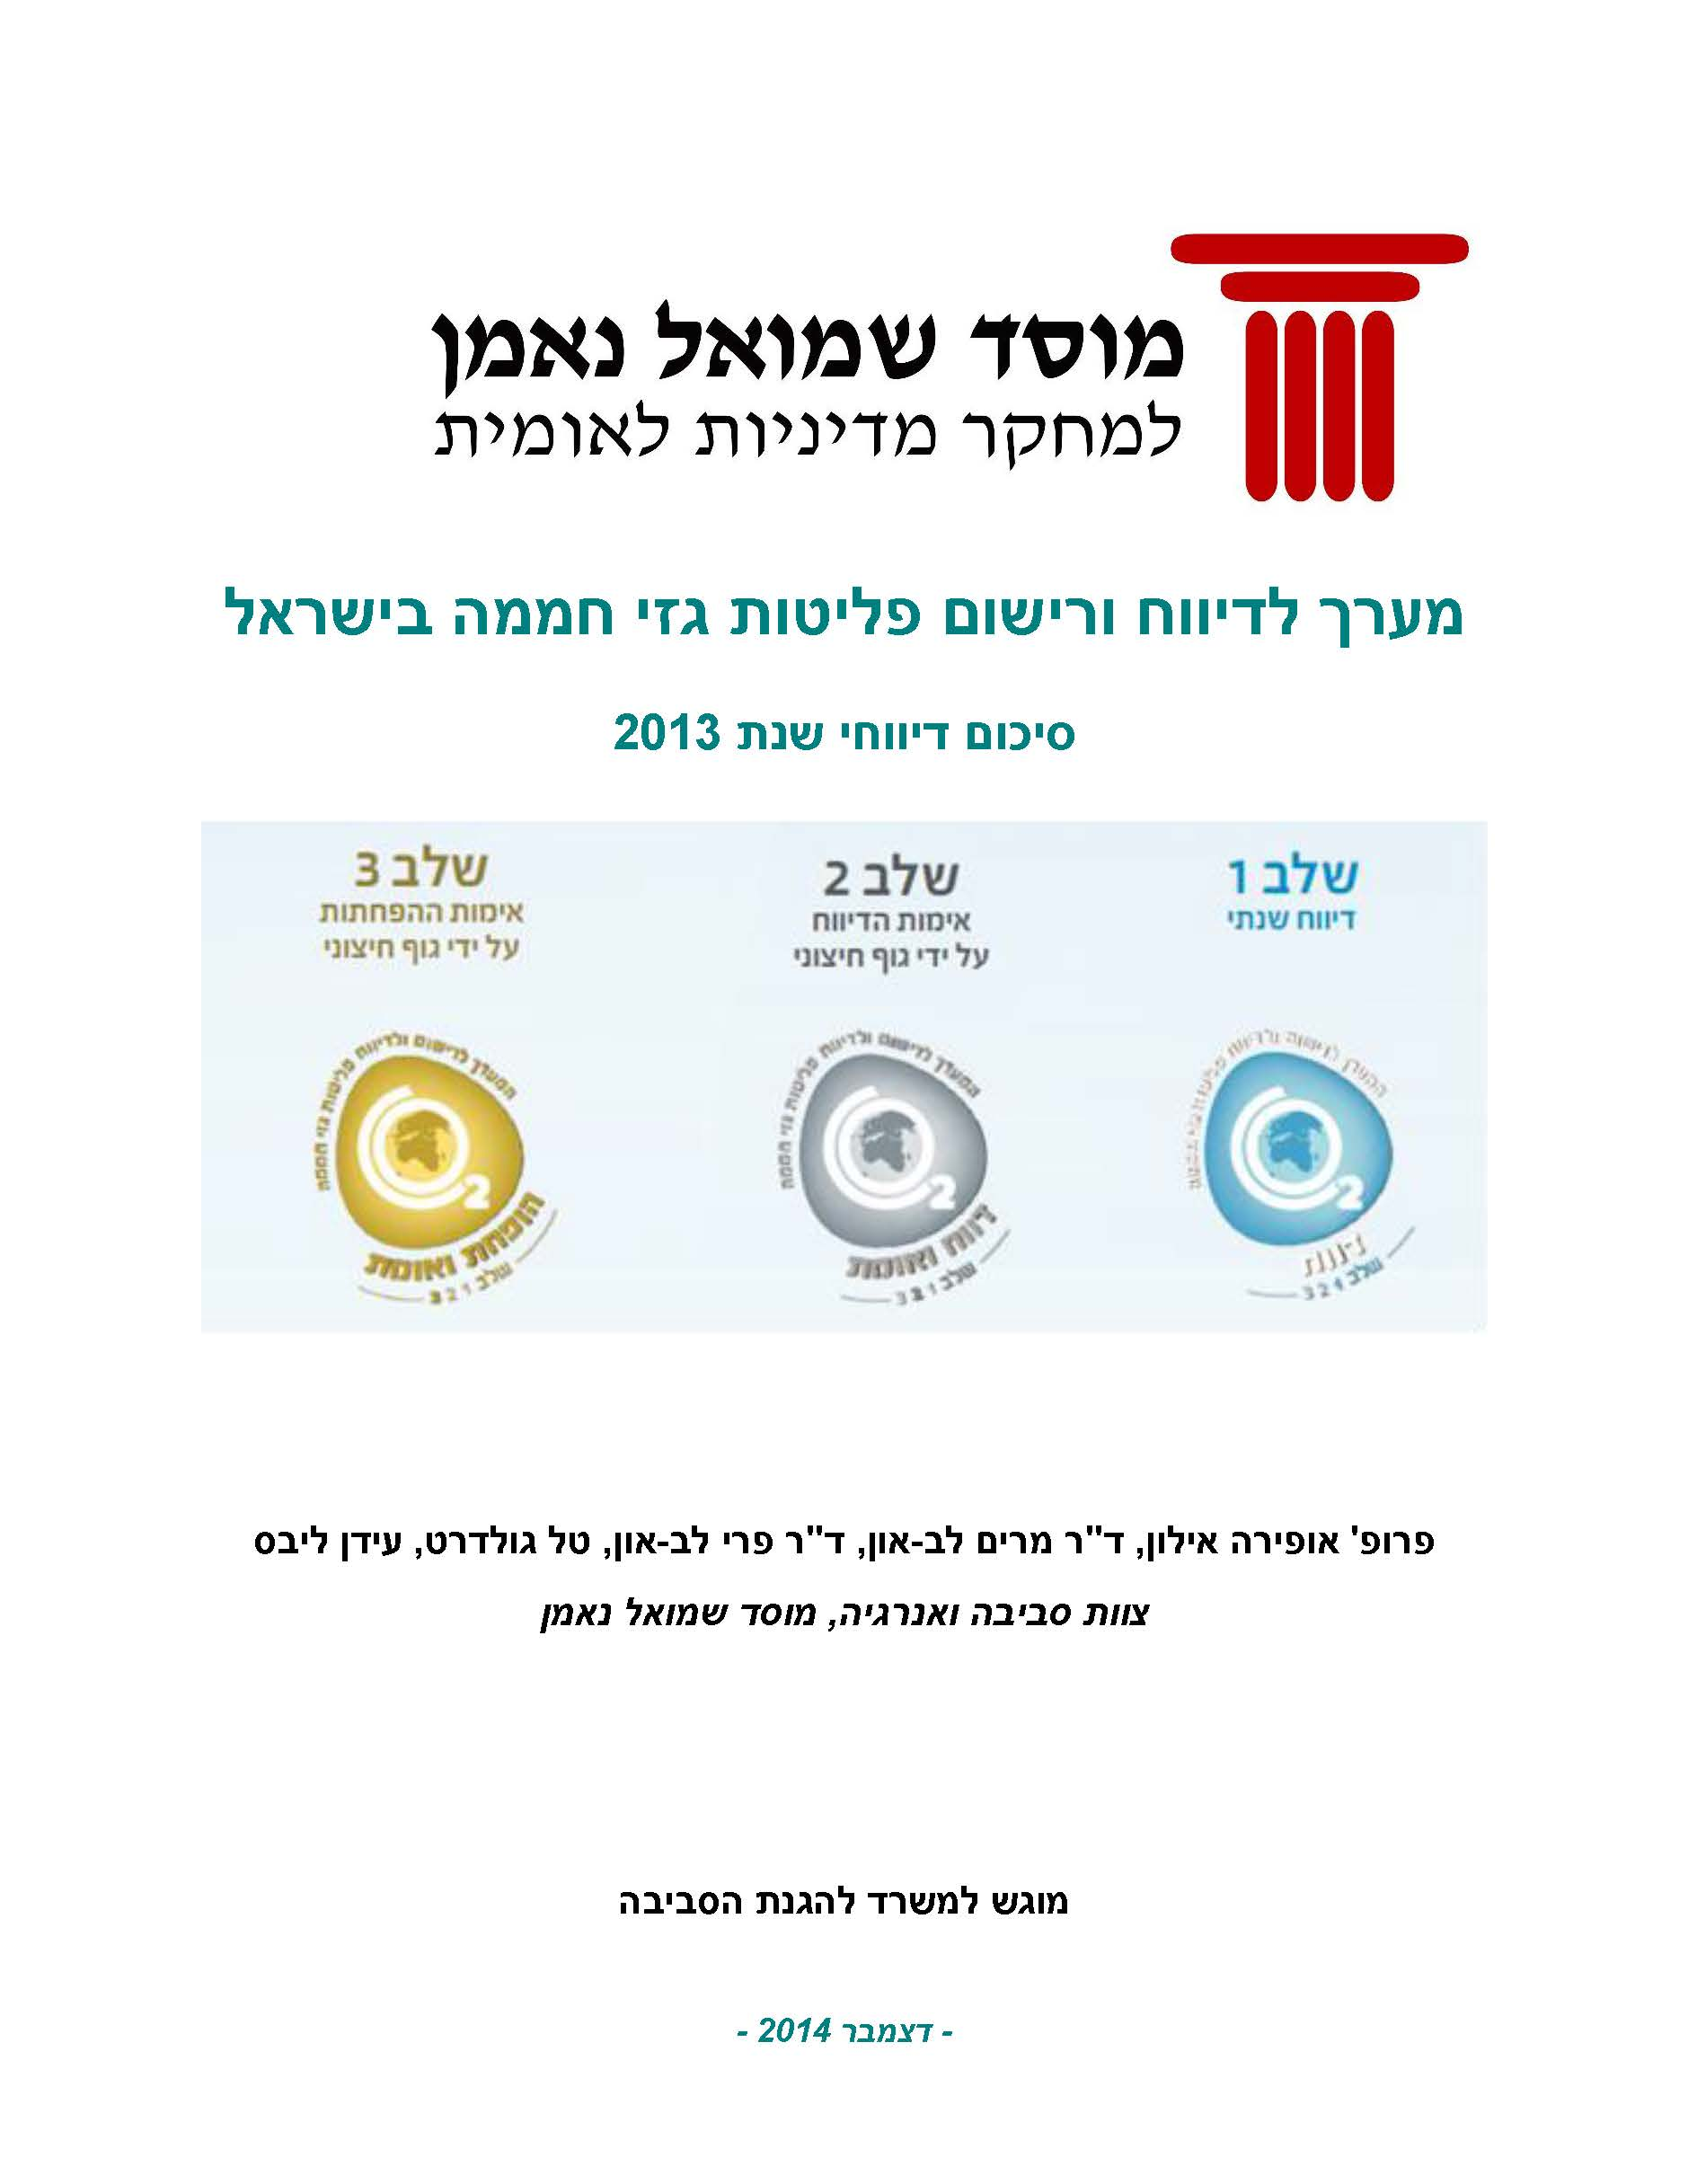 Greenhouse Gas Emissions Reporting and Registration System in Israel: Summary of Reports for 2013